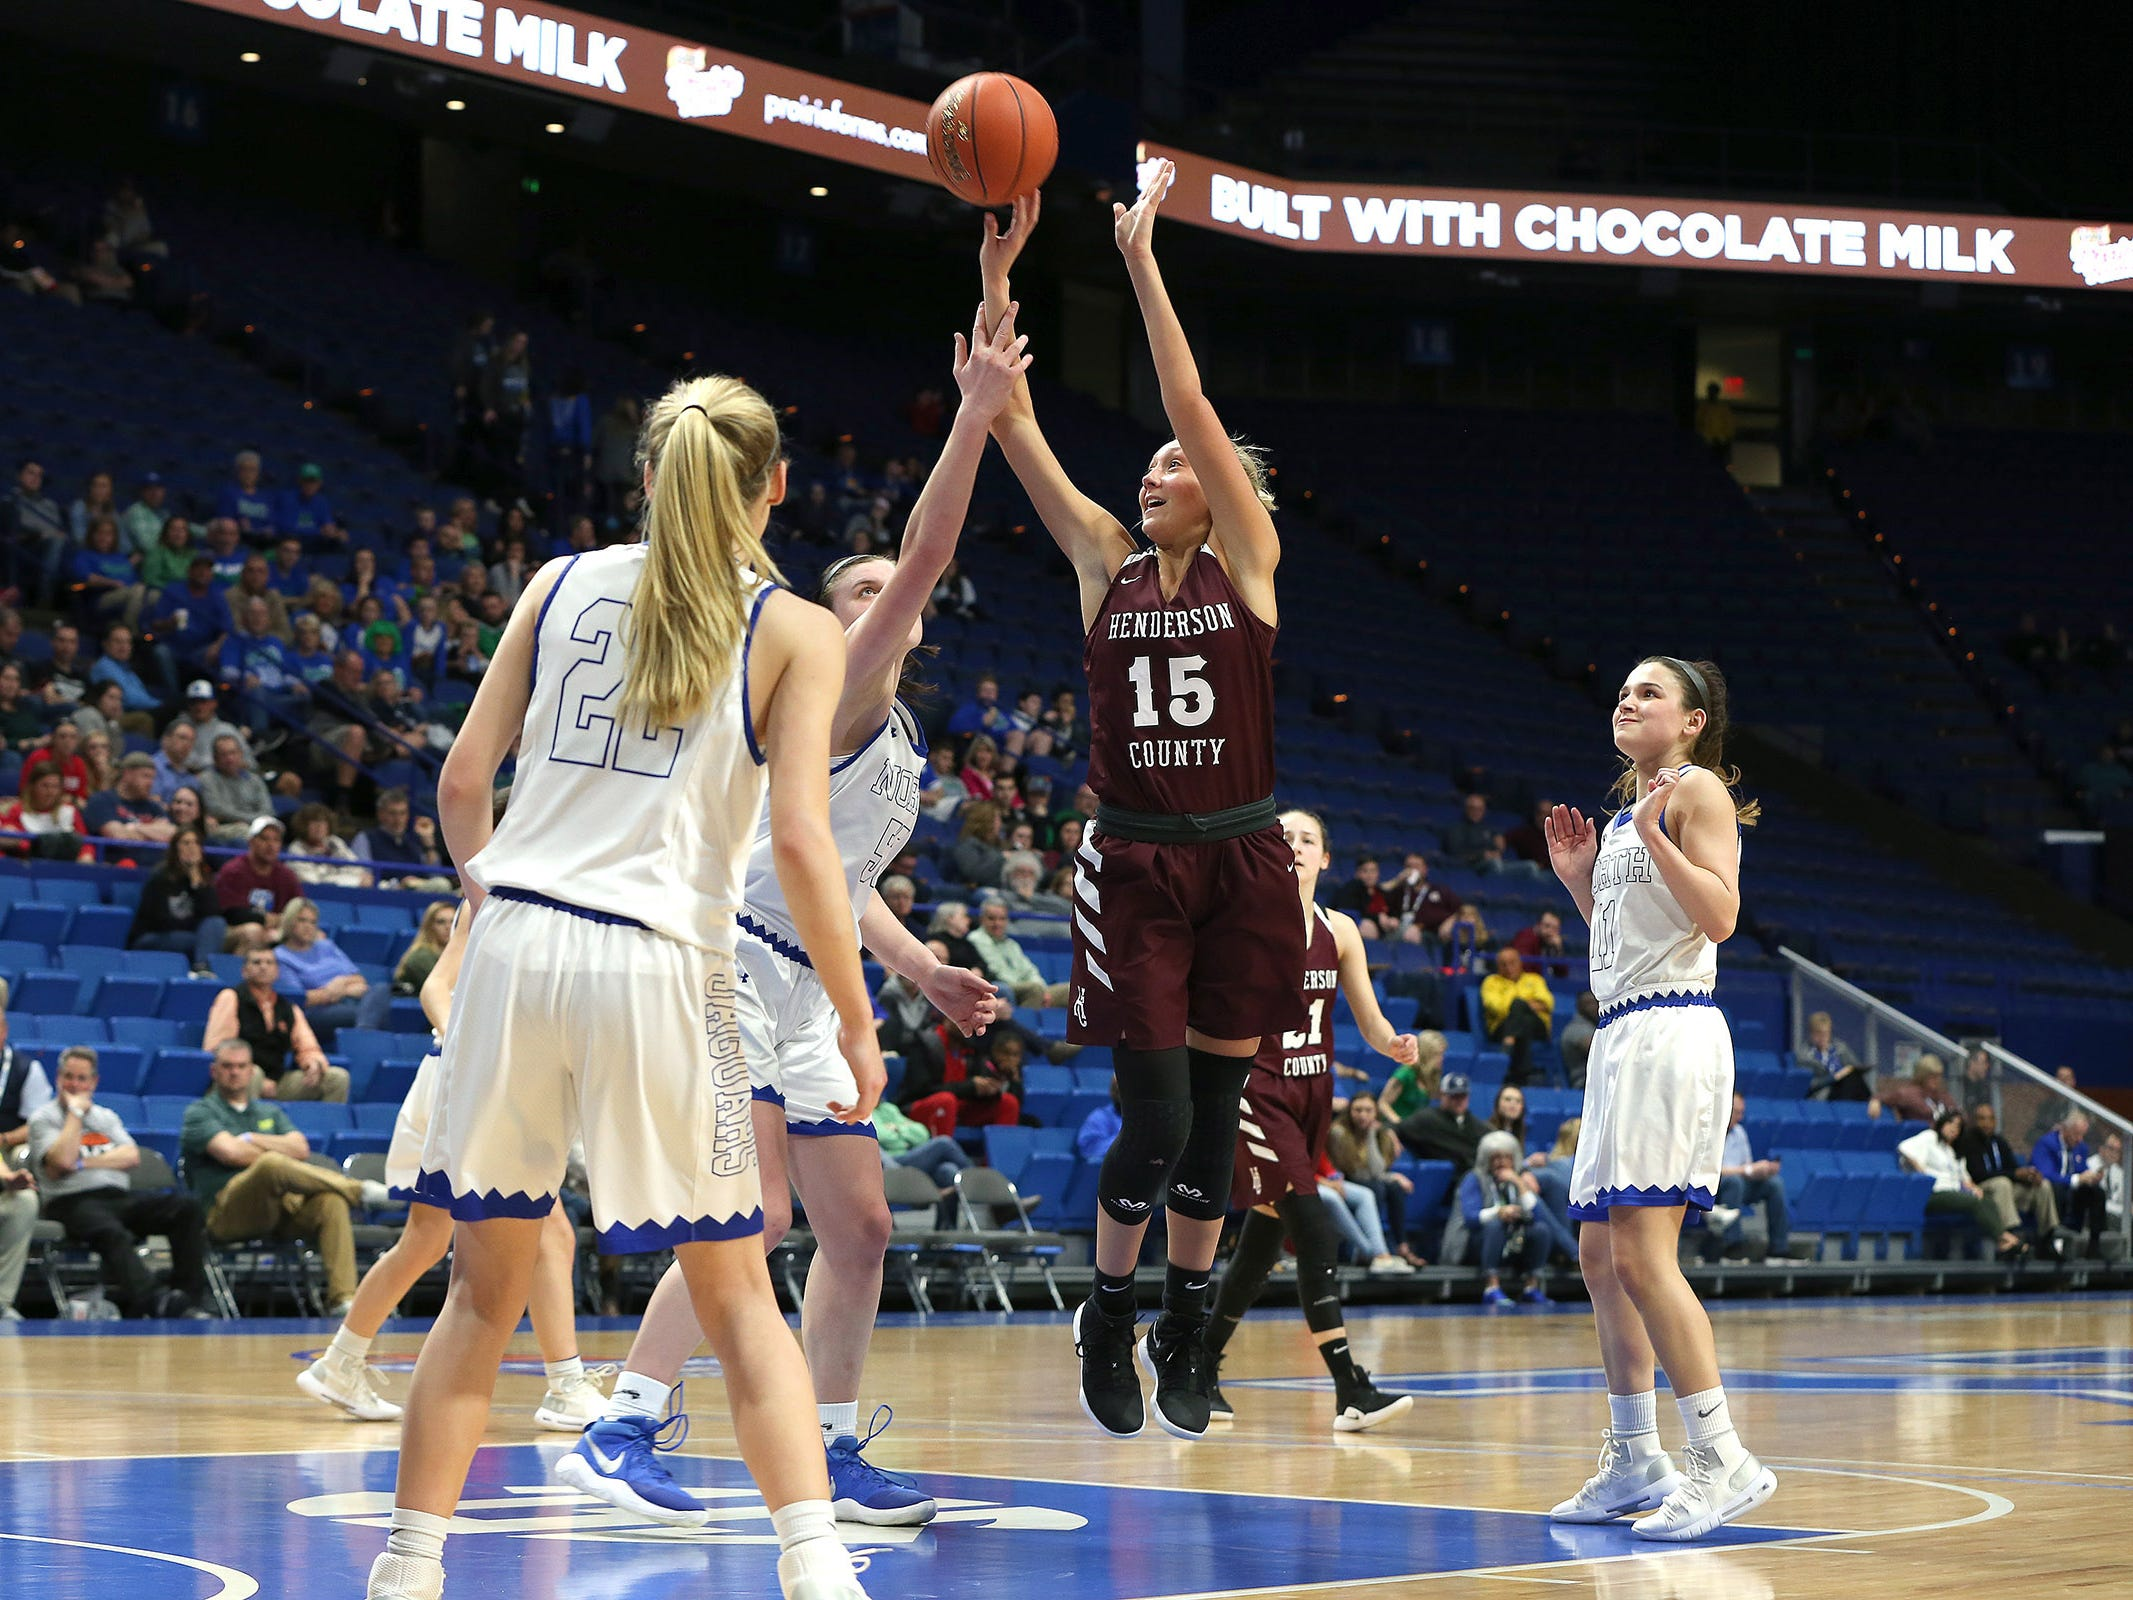 Henderson County's Alyssa Dickson shot Friday against North Laurel in Game 8 of the KHSAA Girls' Sweet 16 at Rupp Arena in Lexington.